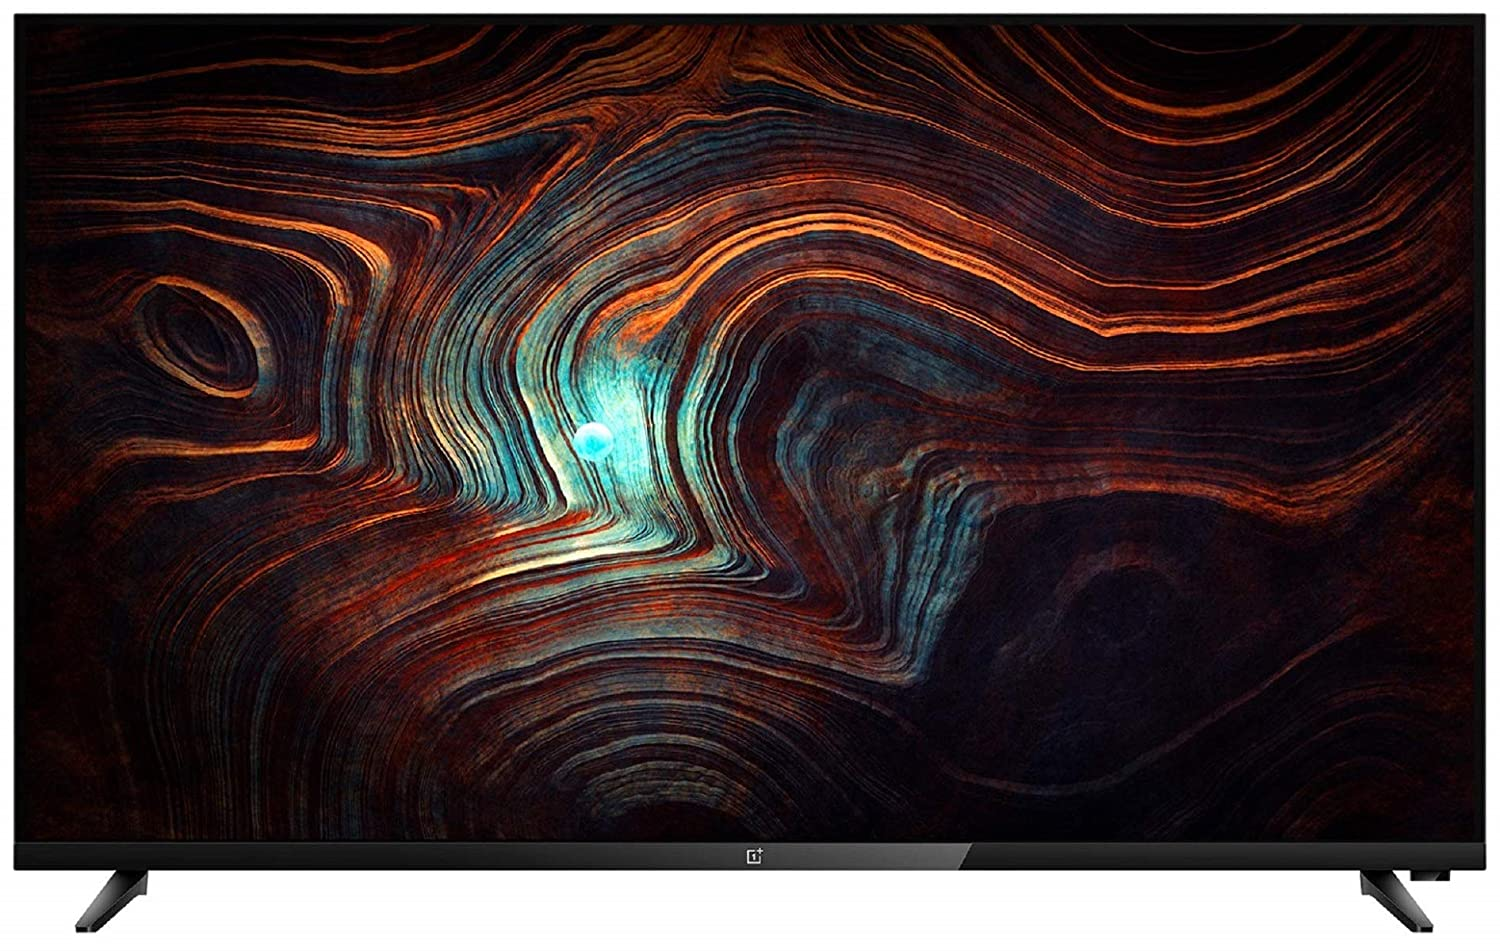 OnePlus Y1 Series 43 inch Full HD LED Smart Android TV